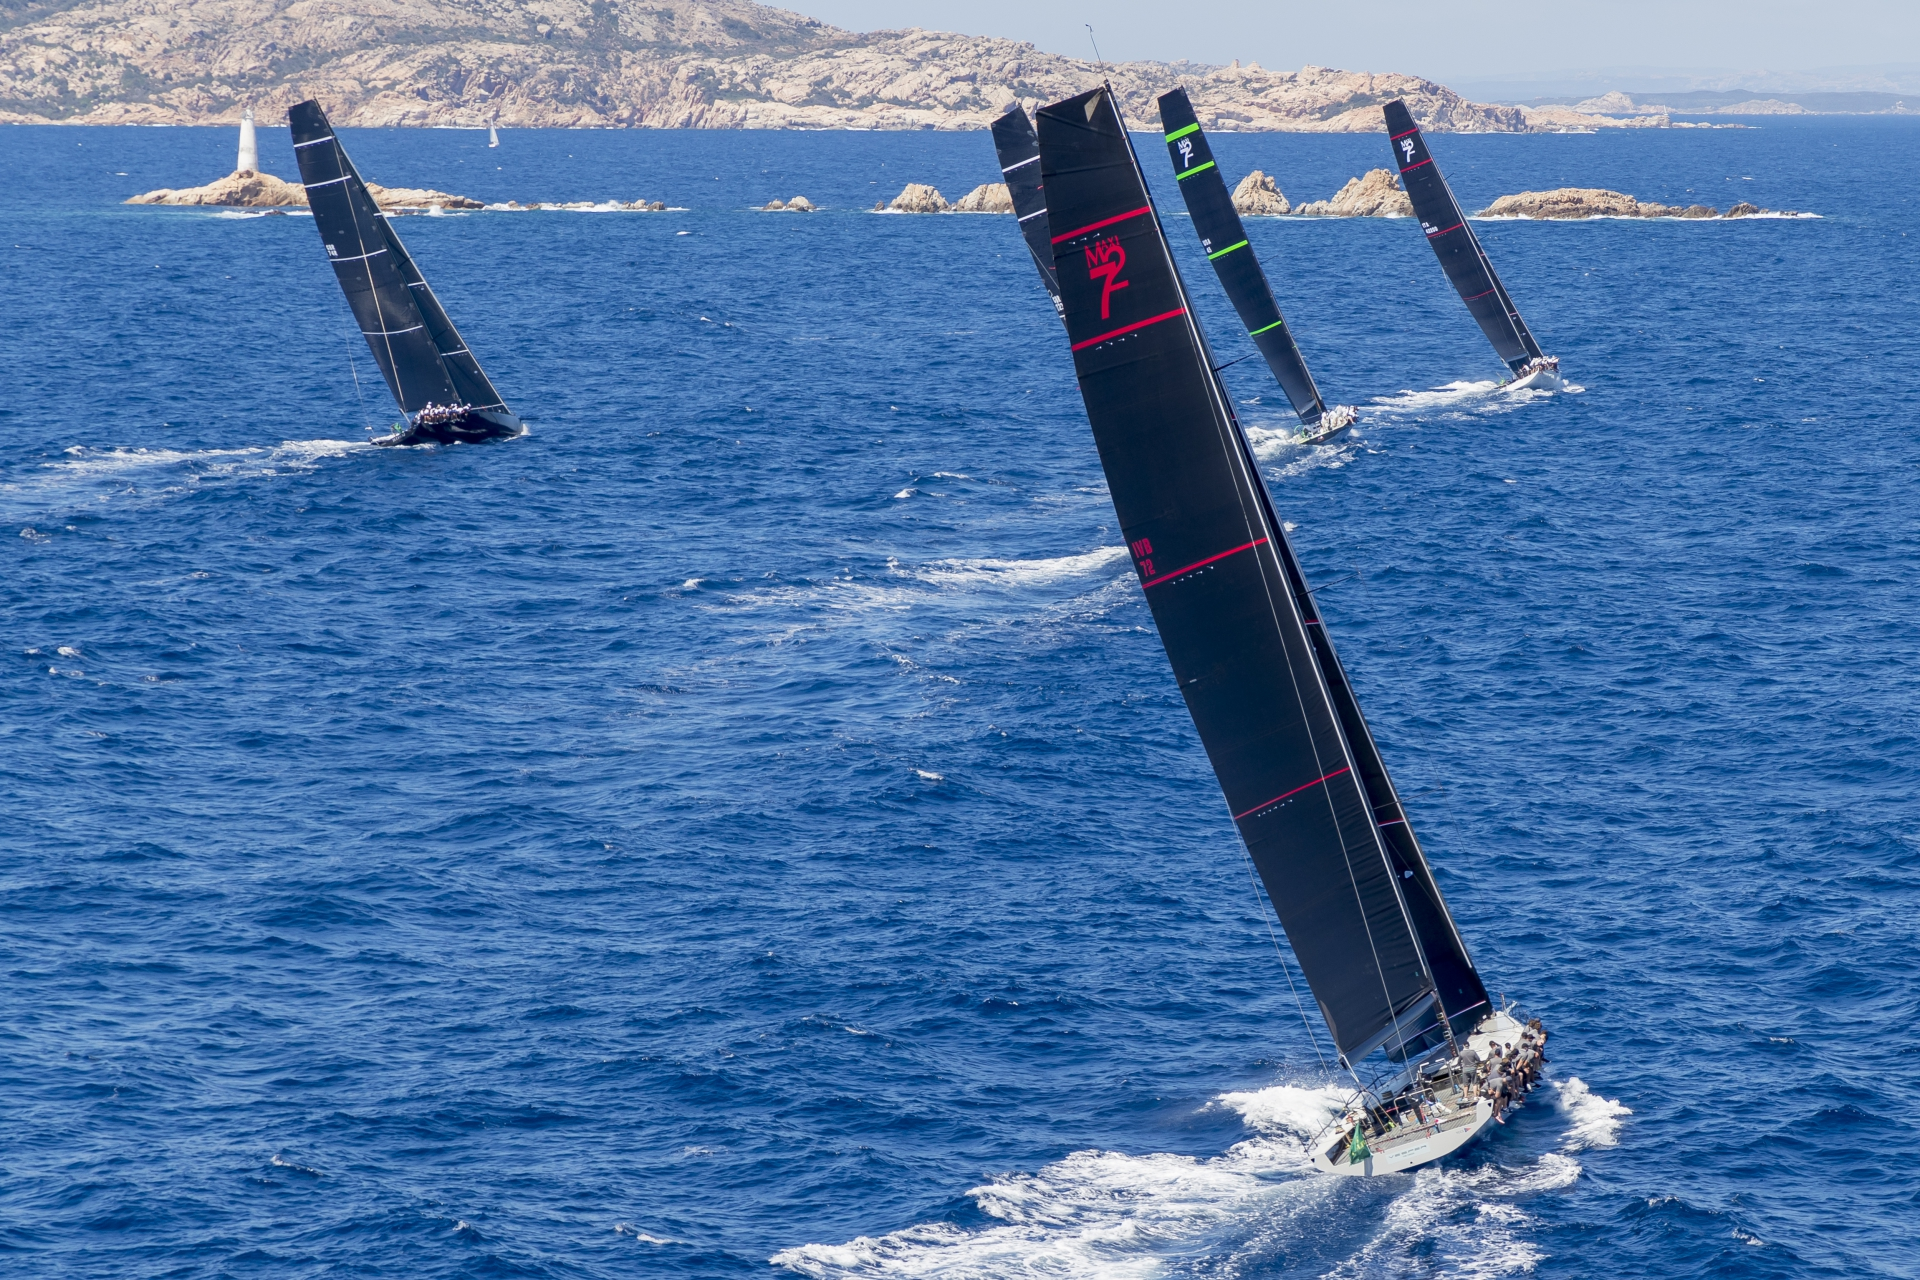 Online the entry list of the Maxi Yacht Rolex Cup 2020 - NEWS - Yacht Club Costa Smeralda